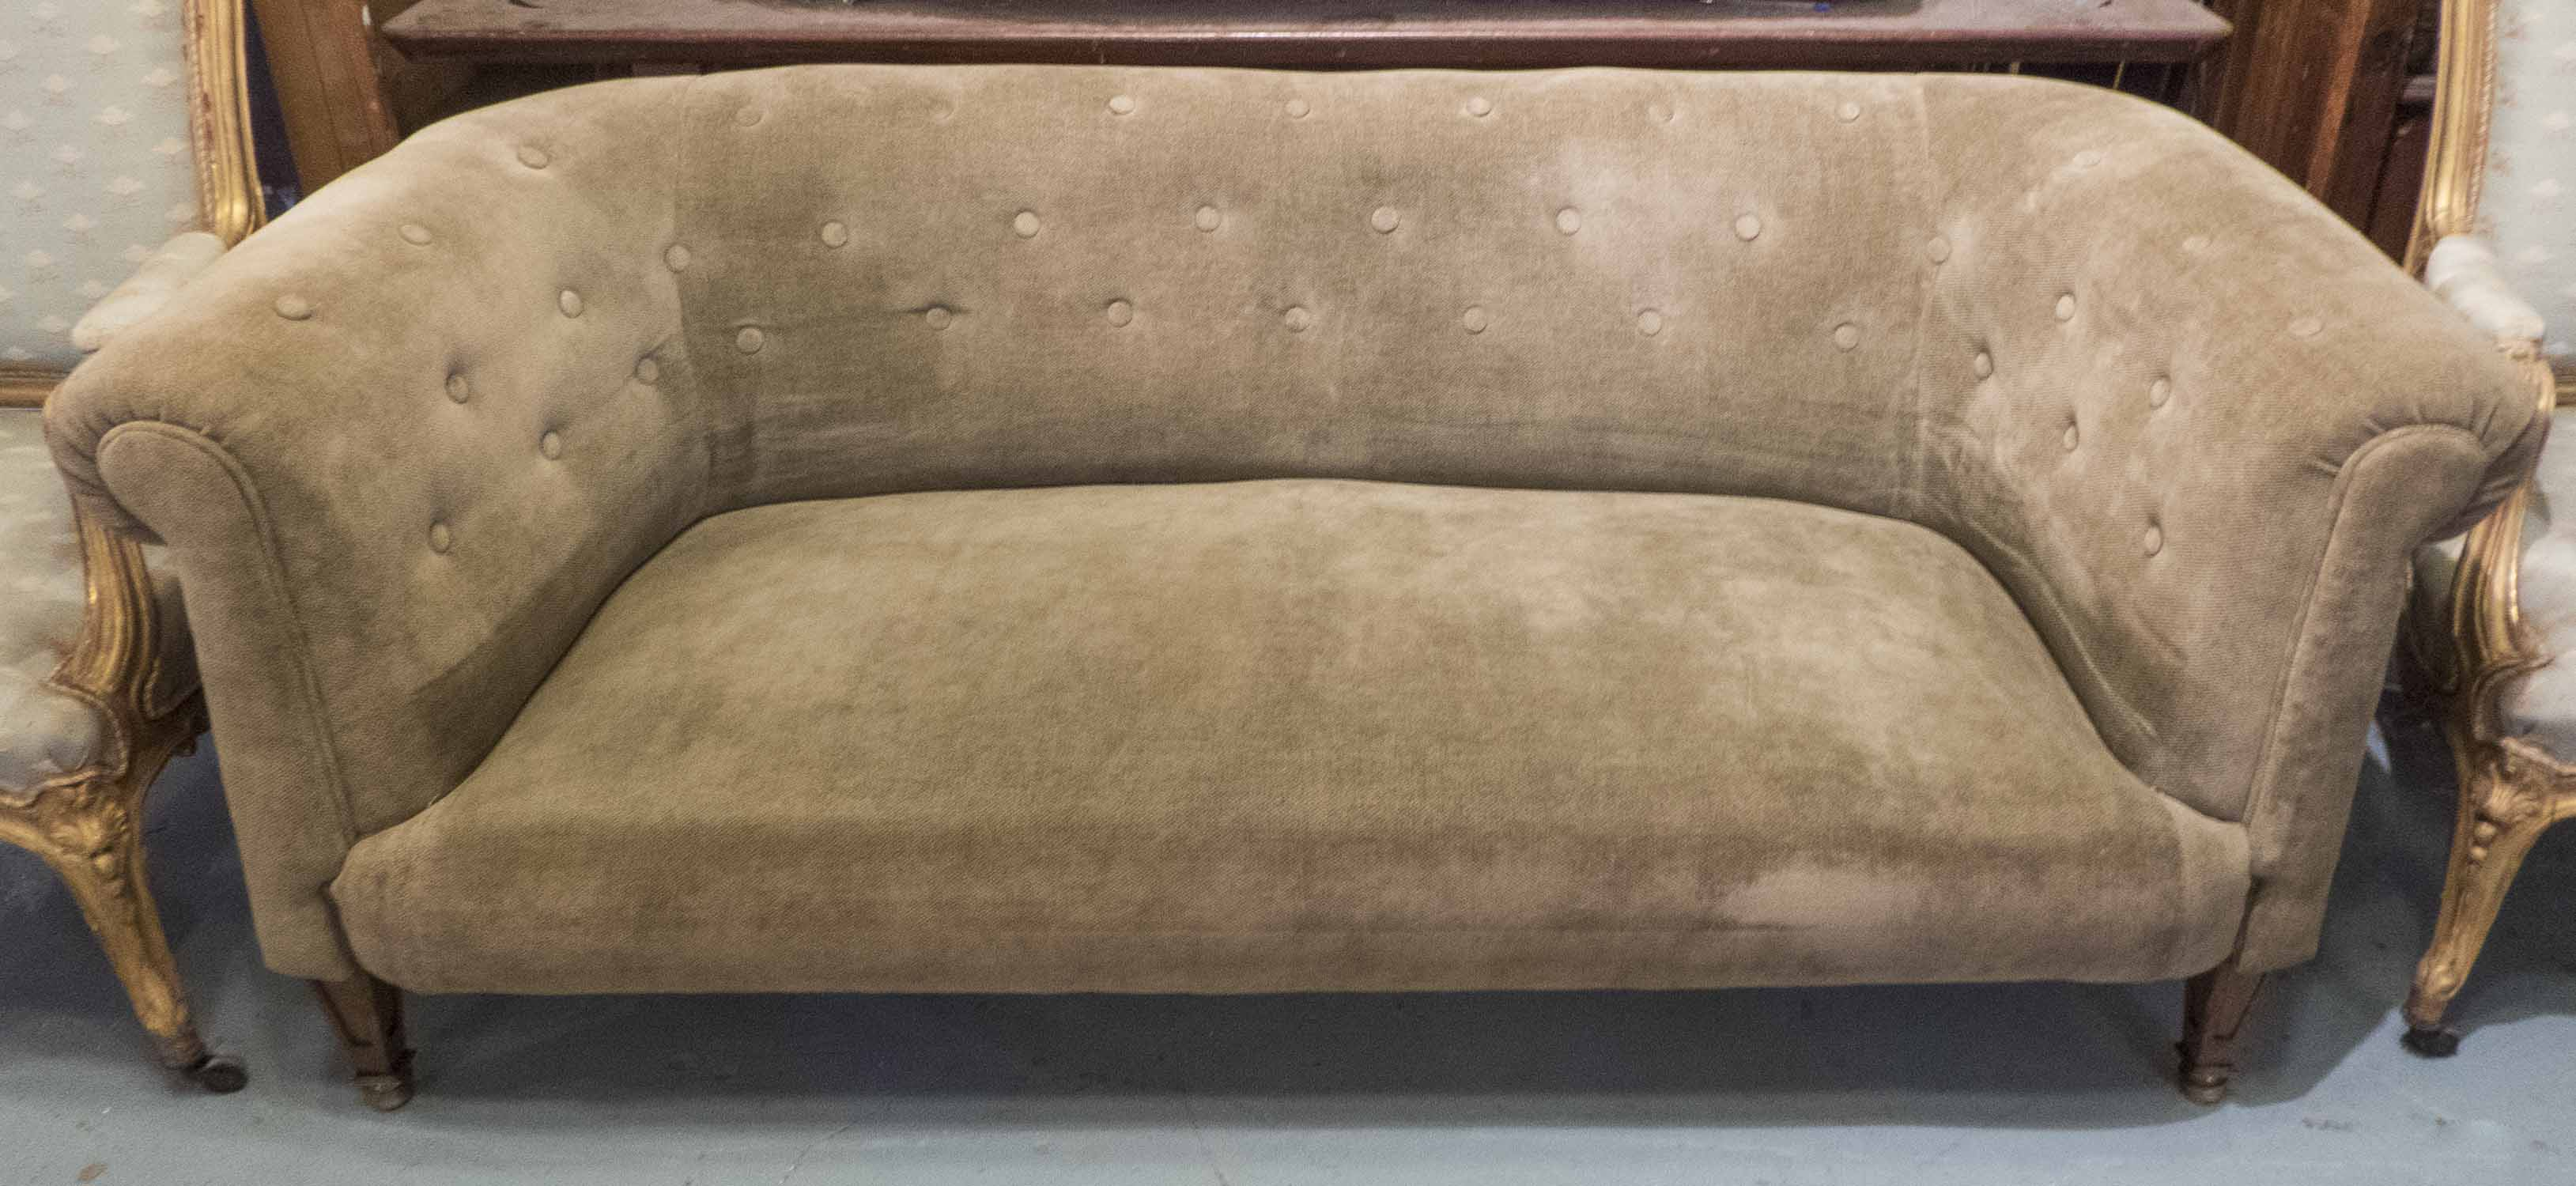 Chesterfield Sofa Early 20th Century Edwardian Taupe Soft Woven